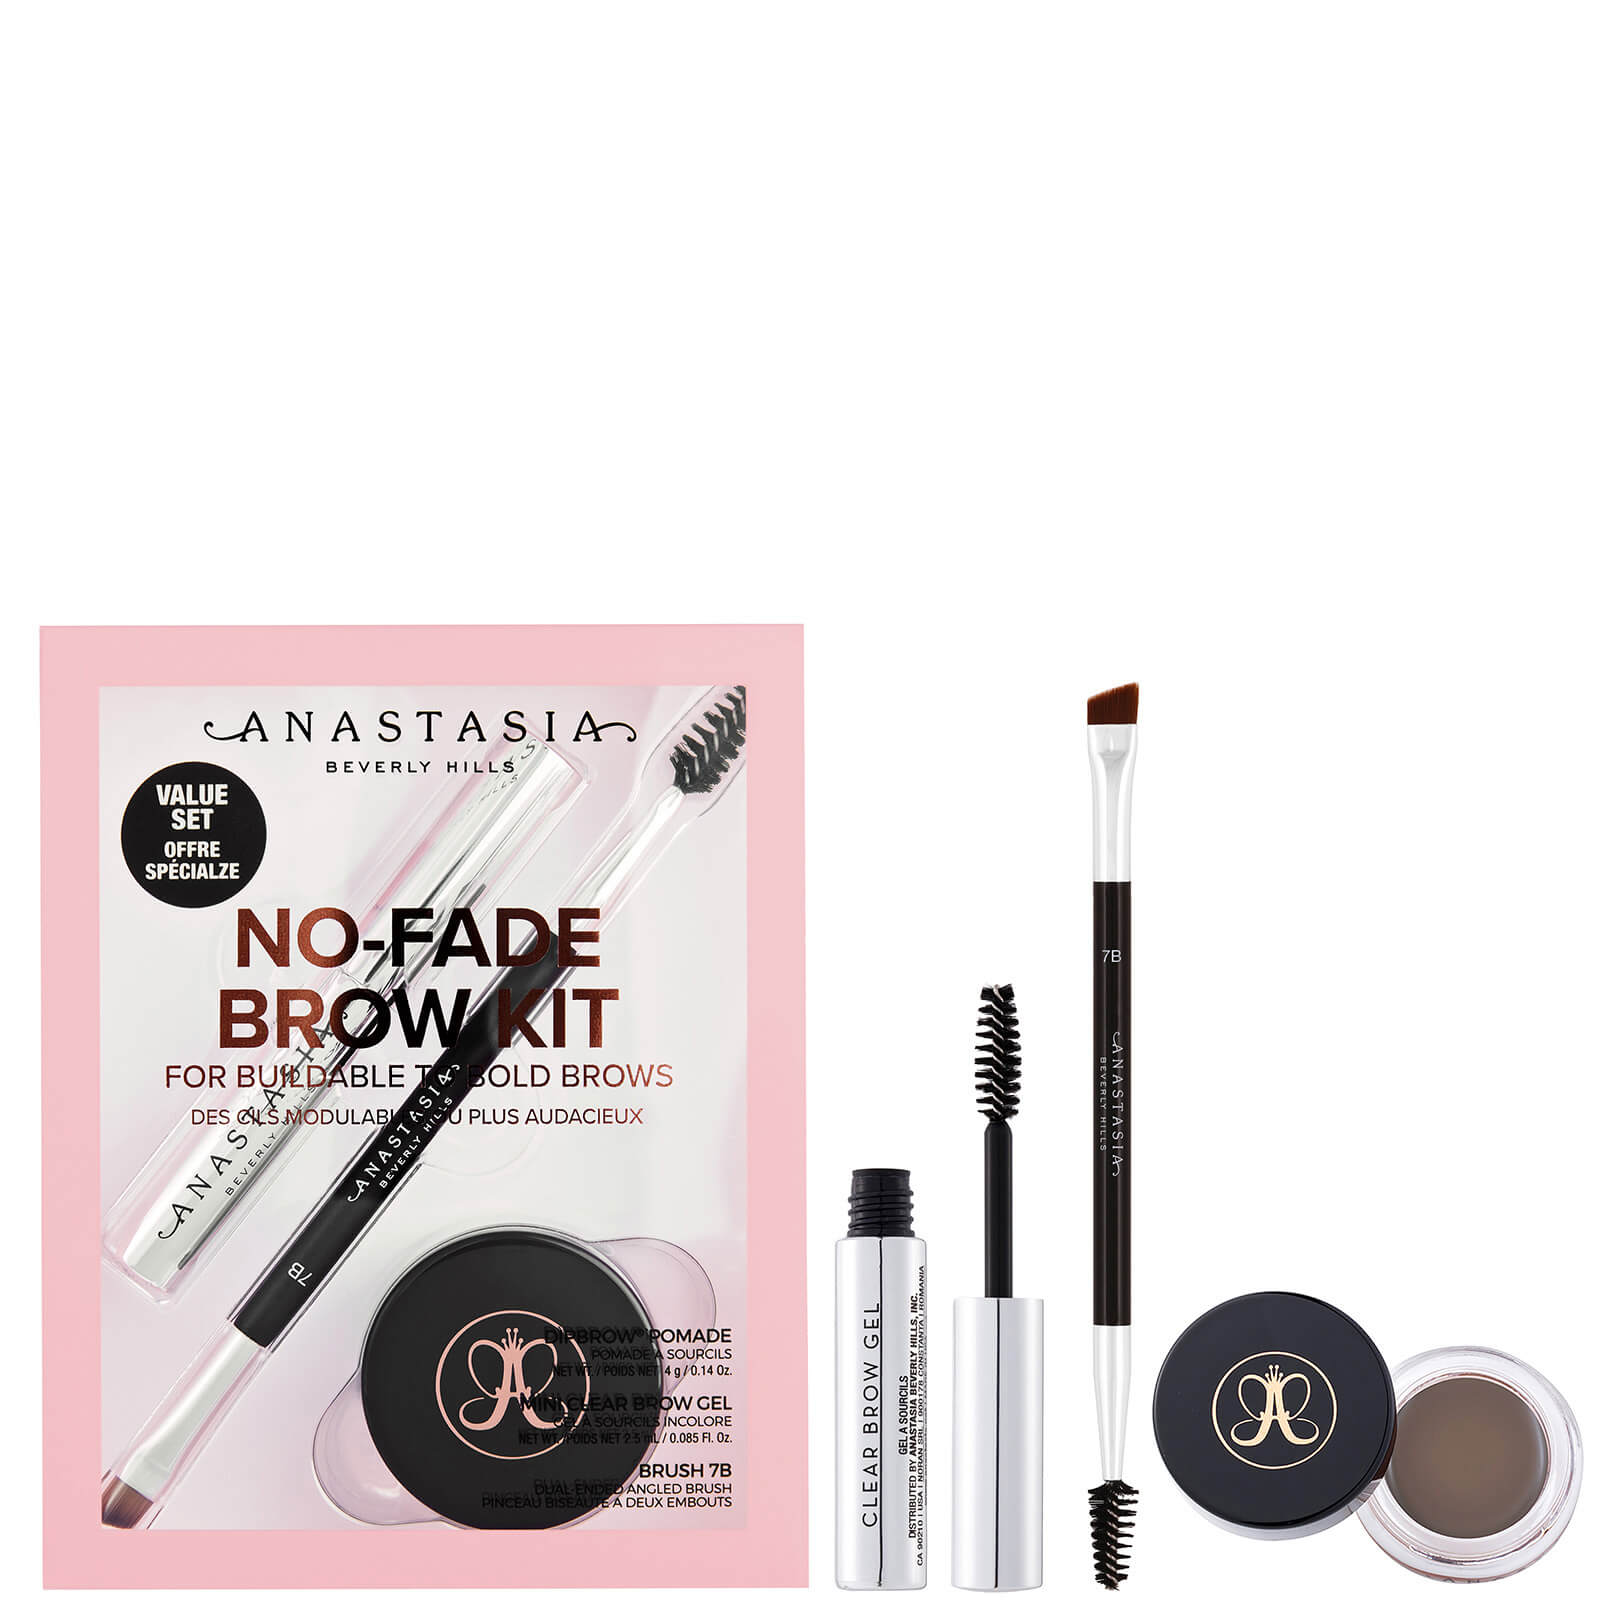 Anastasia Beverly Hills No-Fade Brow Kit 9.5g (Various Shades) - Taupe